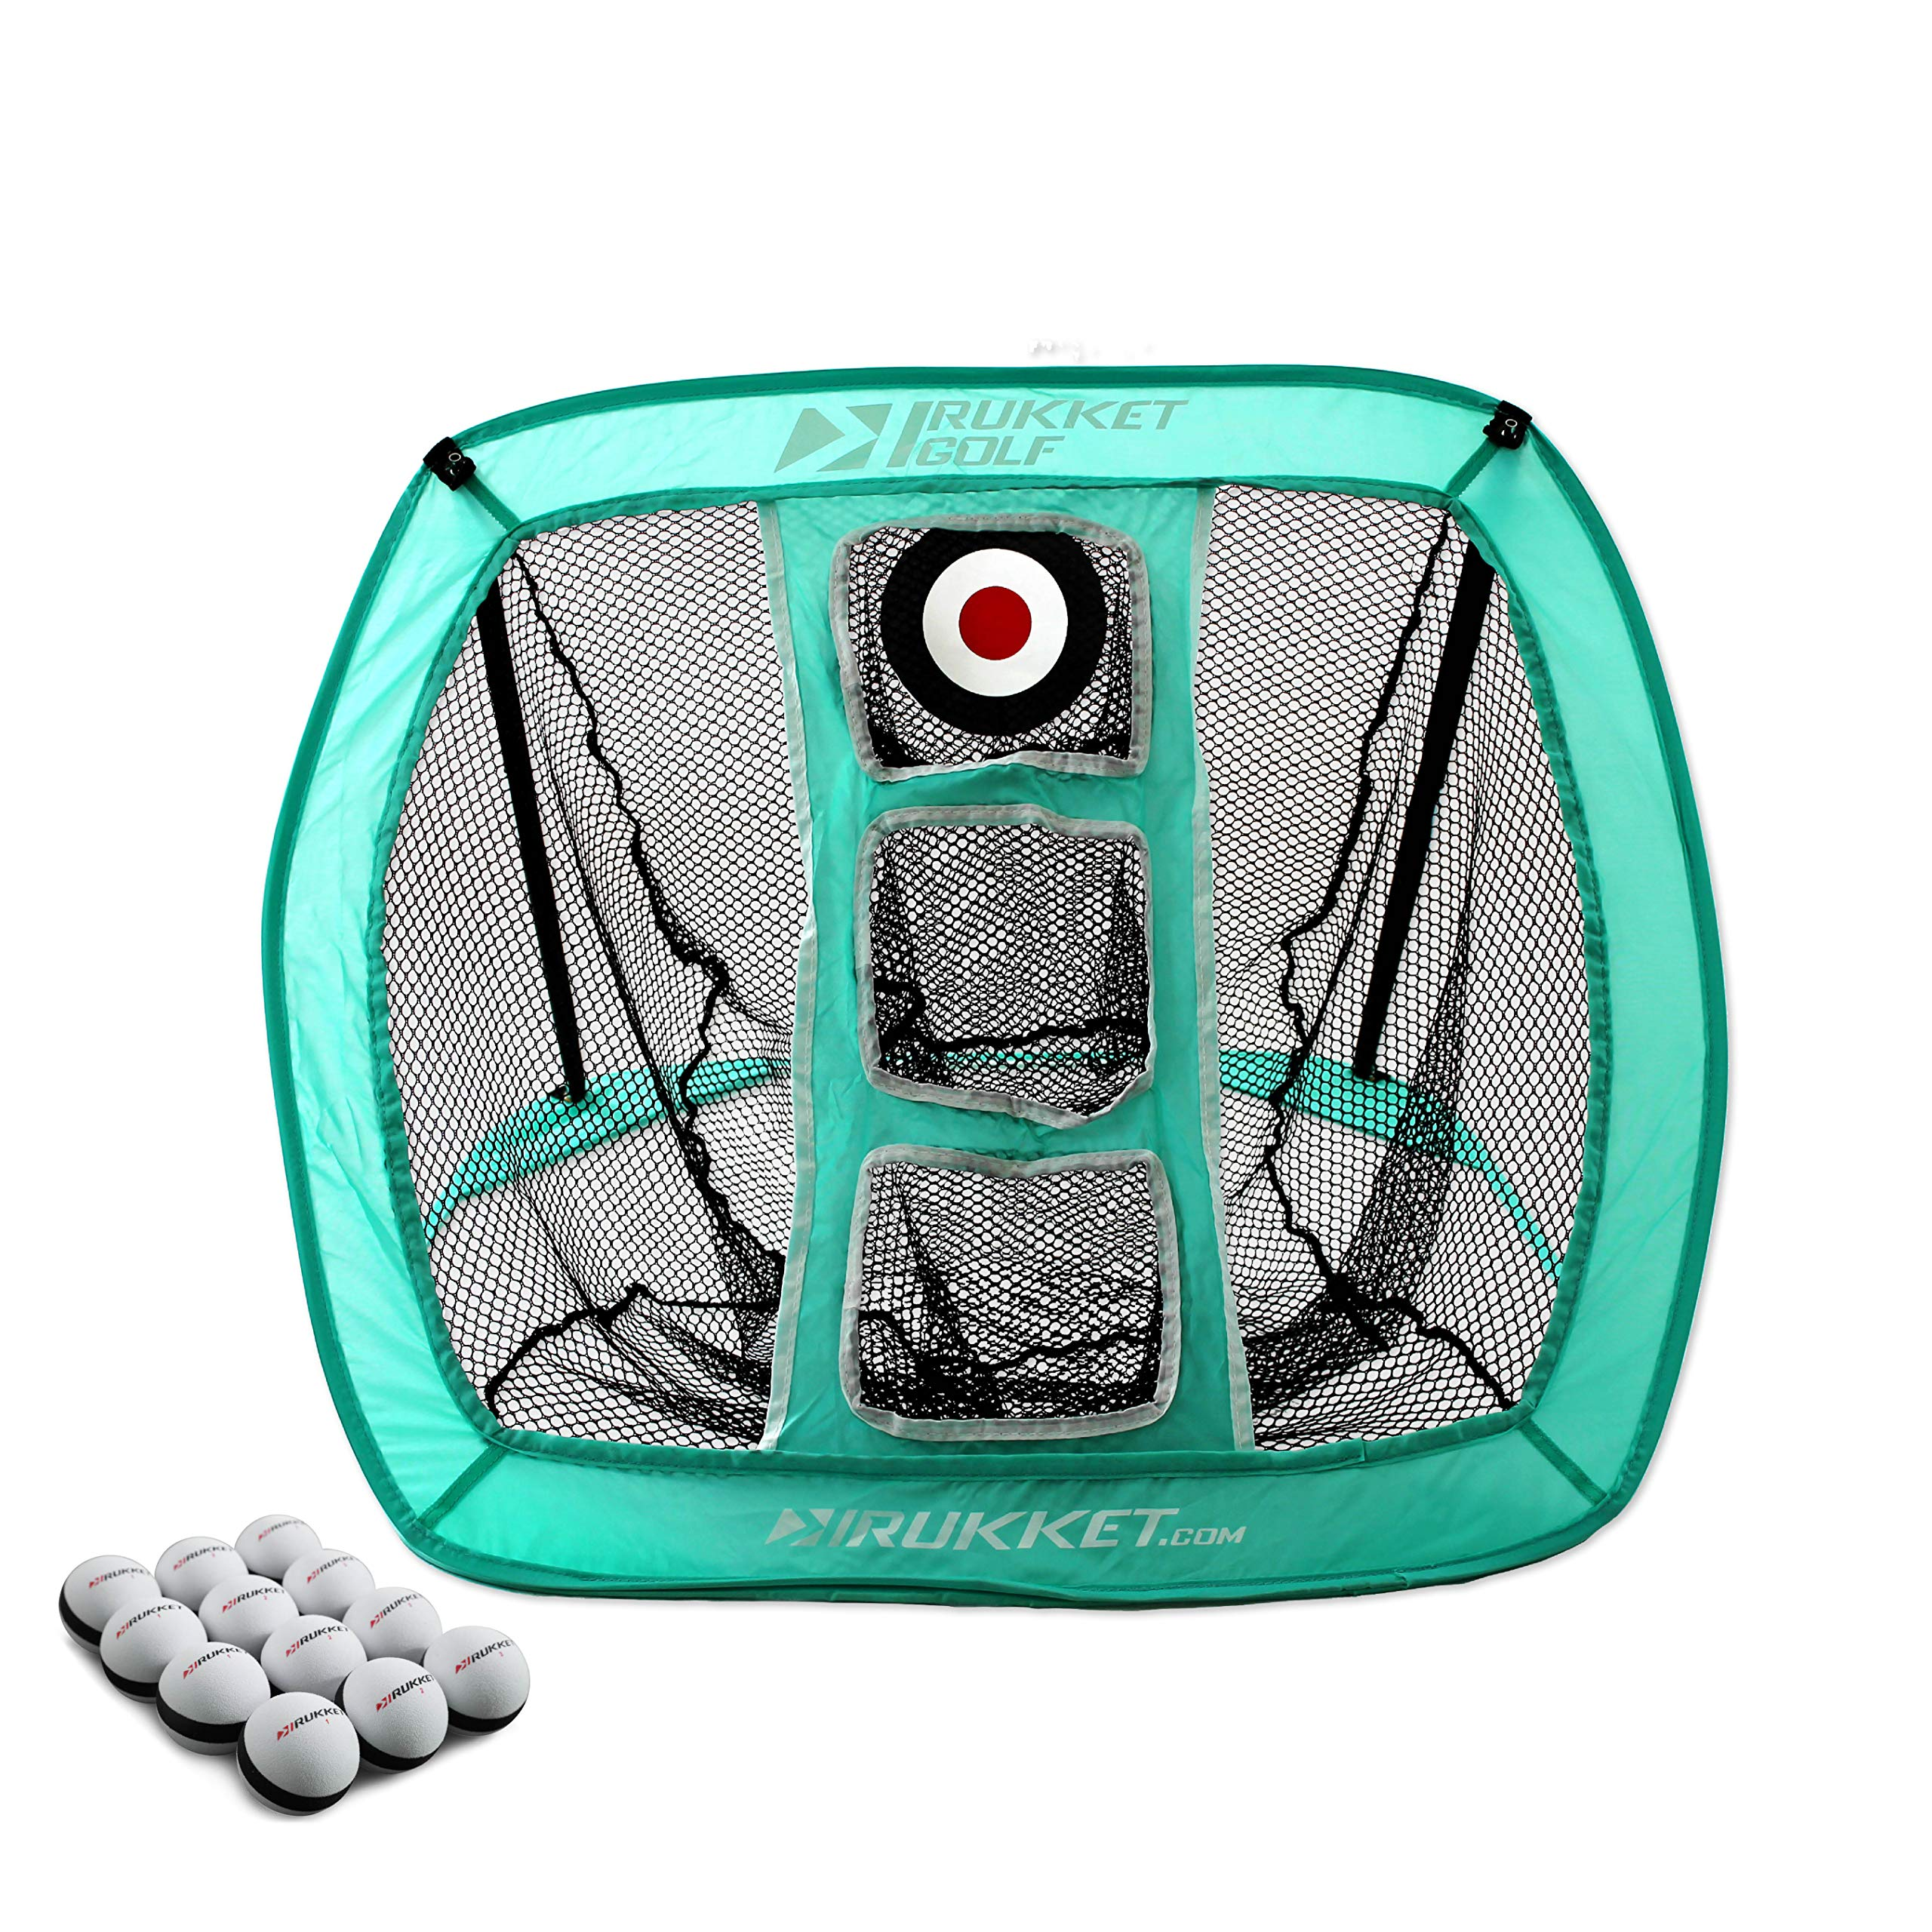 Rukket Pop Up Golf Chipping Net | Outdoor/Indoor Golfing Target Accessories and Backyard Practice Swing Game with 12 Foam Training Balls (Blue) by Rukket Sports